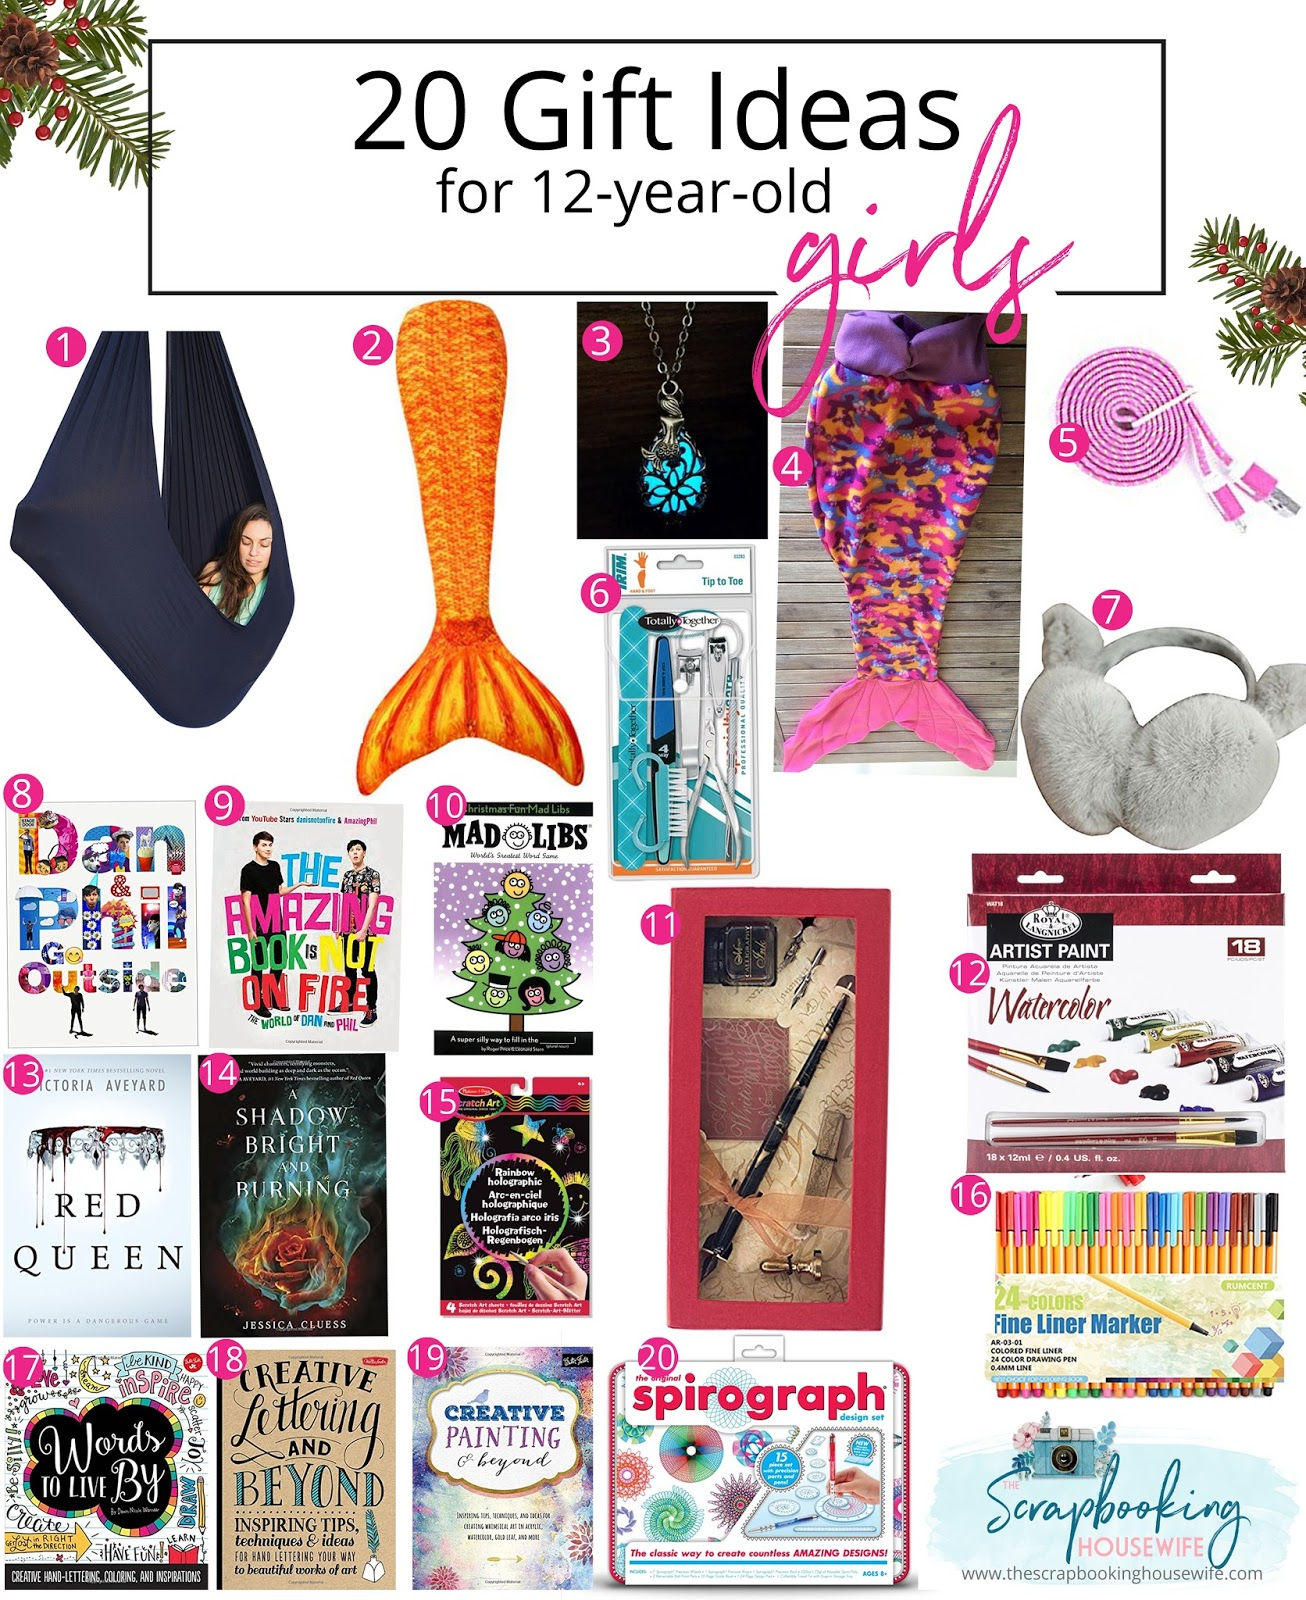 Ellabella Designs 20 GIFT IDEAS FOR 12 YEAR OLD TWEEN GIRLS